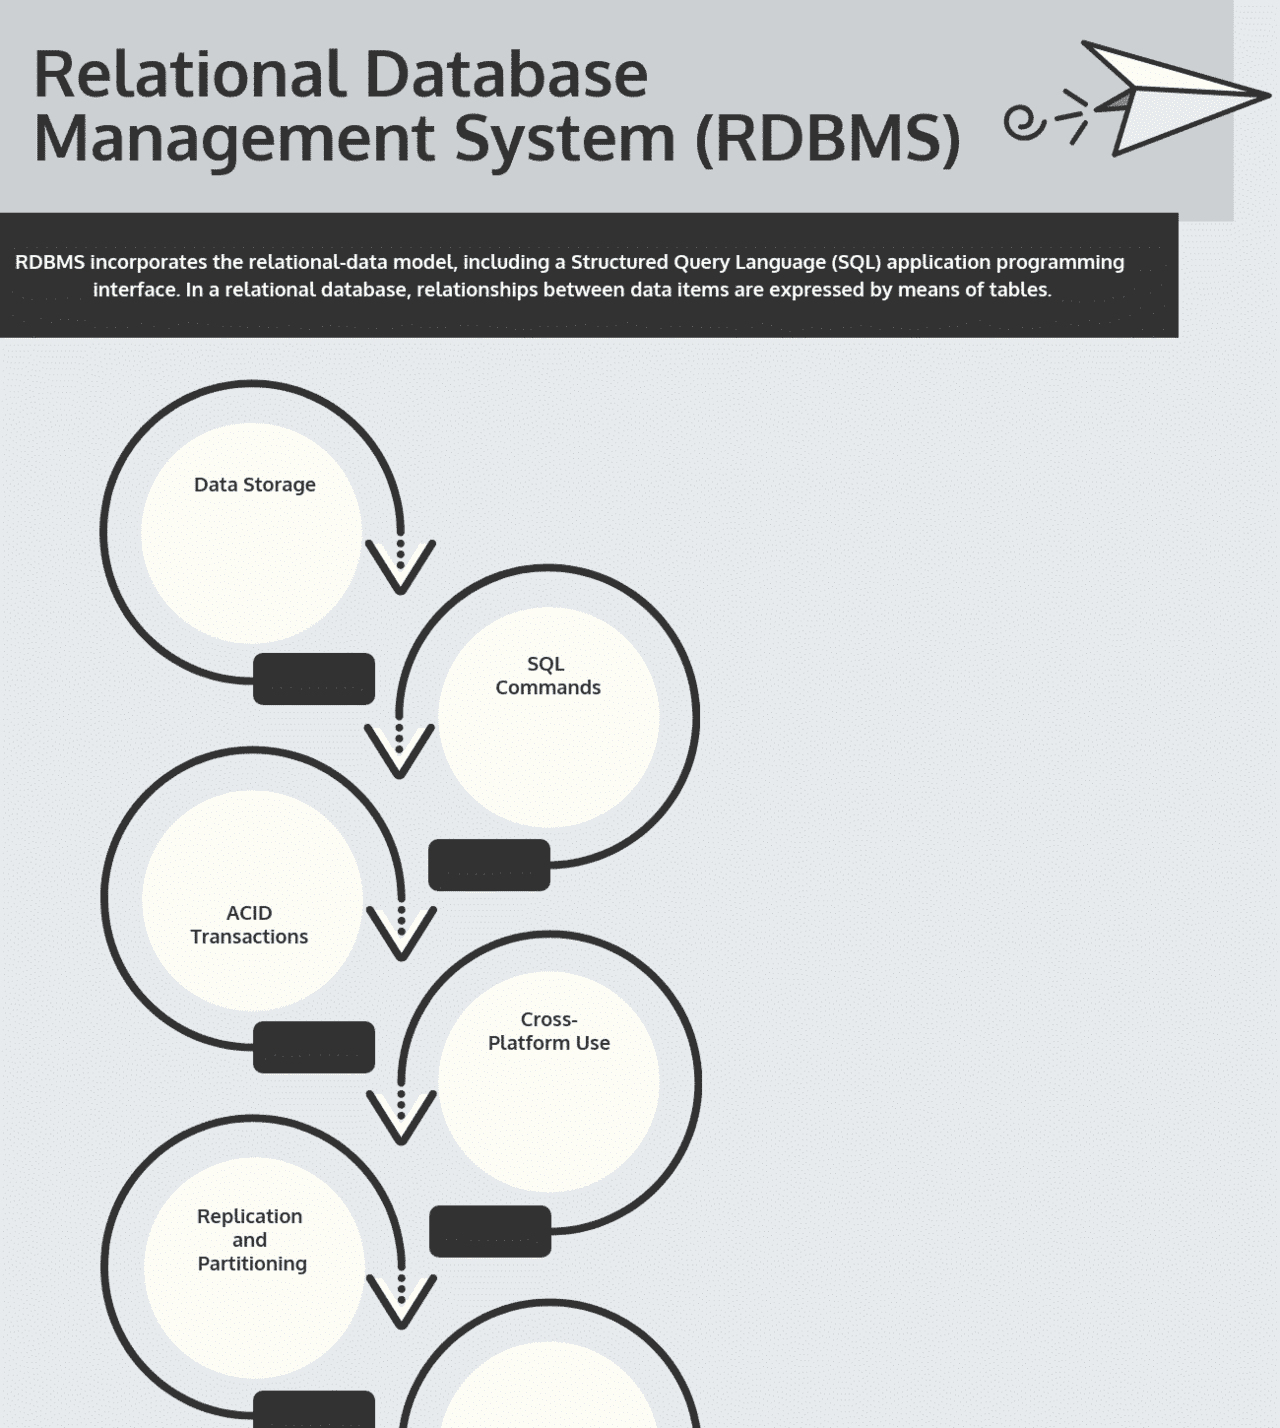 Top 10 Free Relational Database Management Systems Rdbms In 2020 Reviews Features Pricing Comparison Pat Research B2b Reviews Buying Guides Best Practices